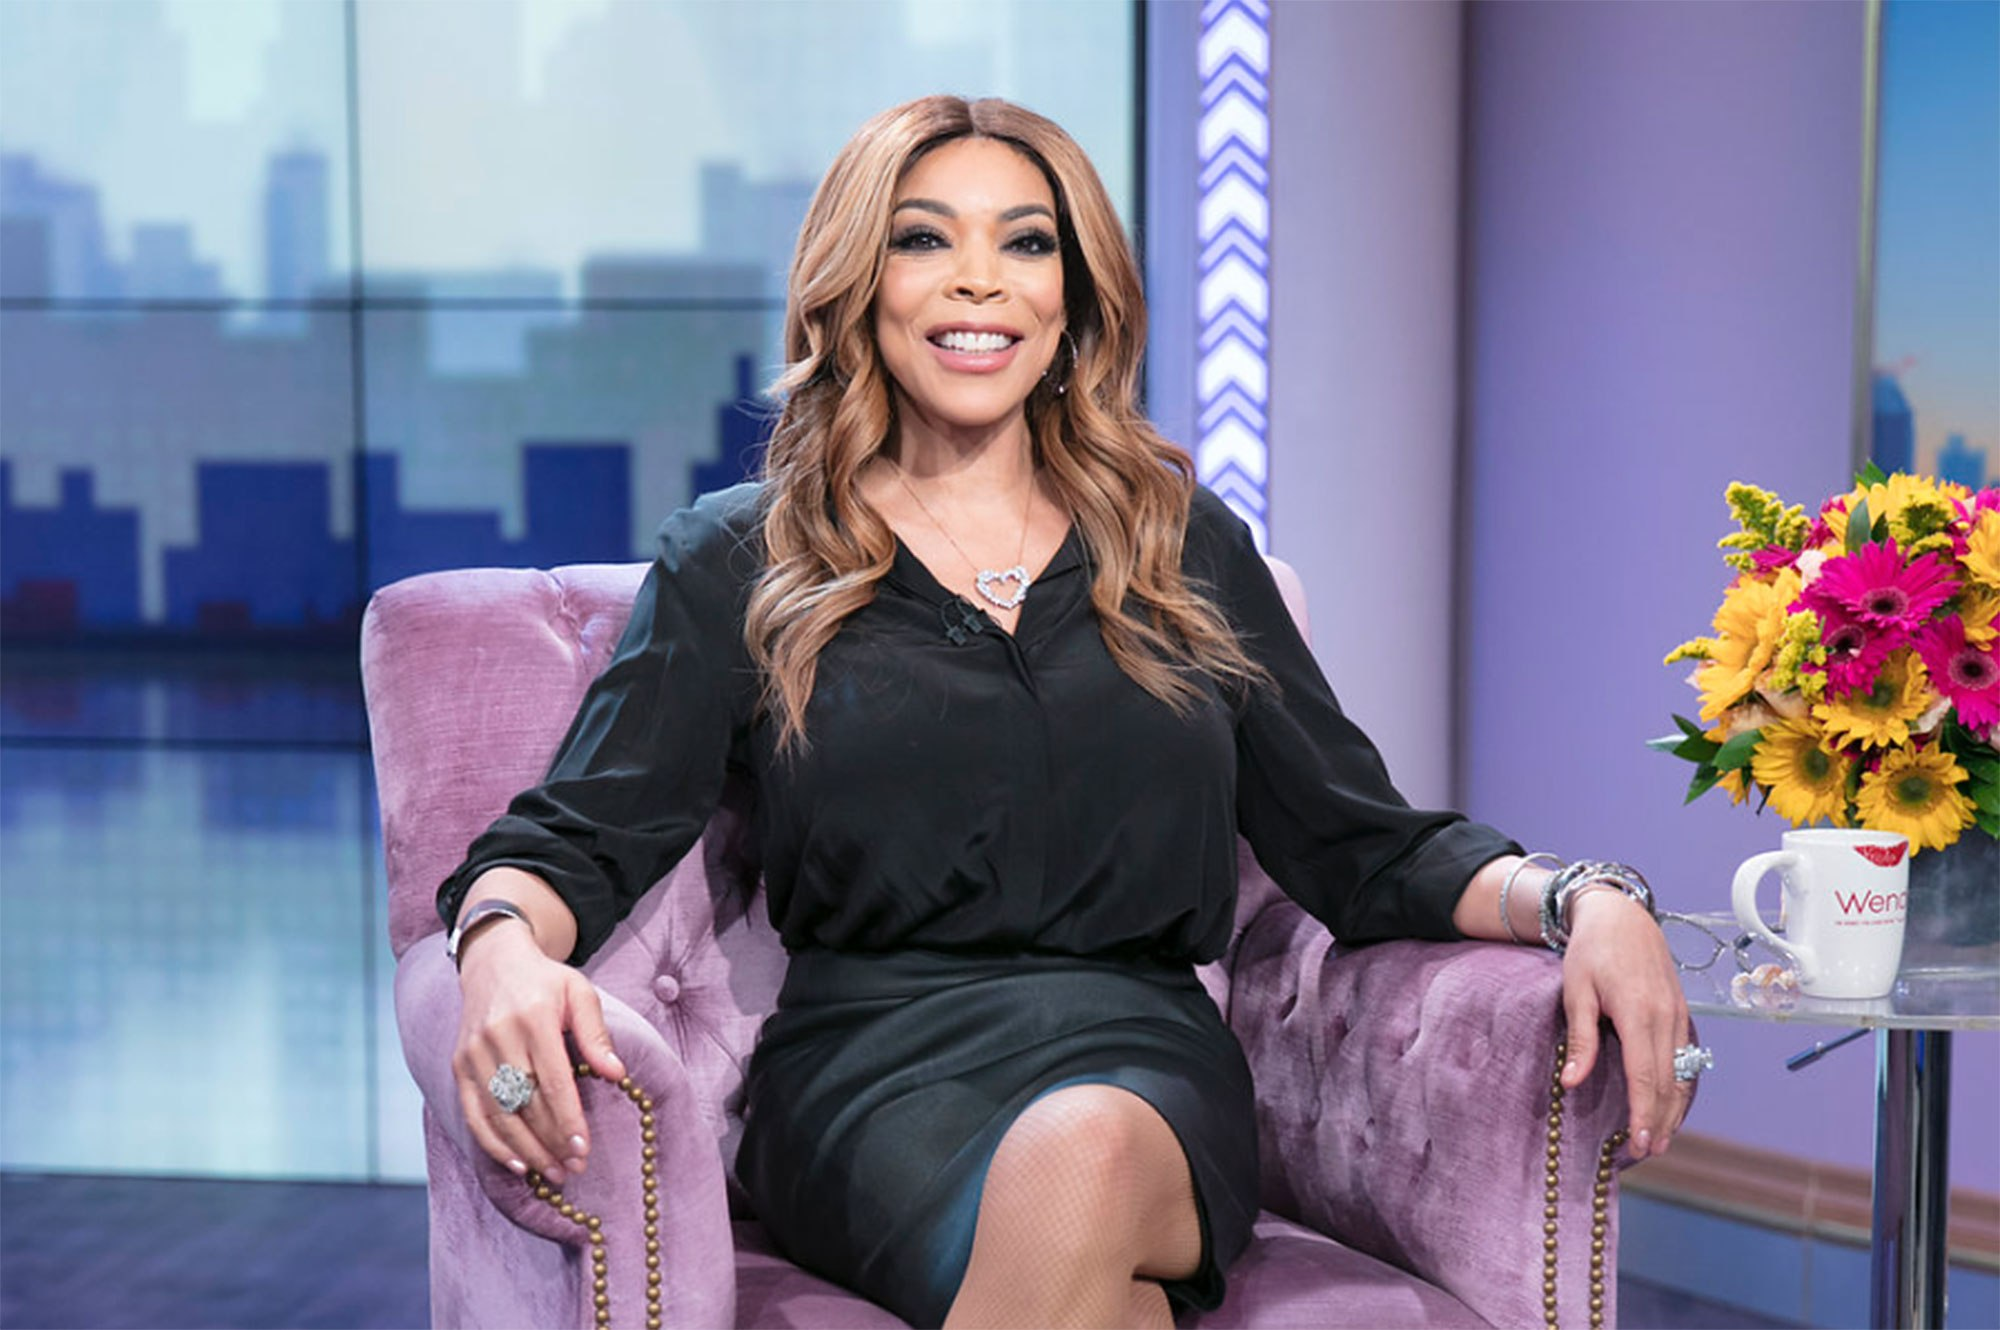 'Nobody knew': Wendy Williams says she's been living in sober house